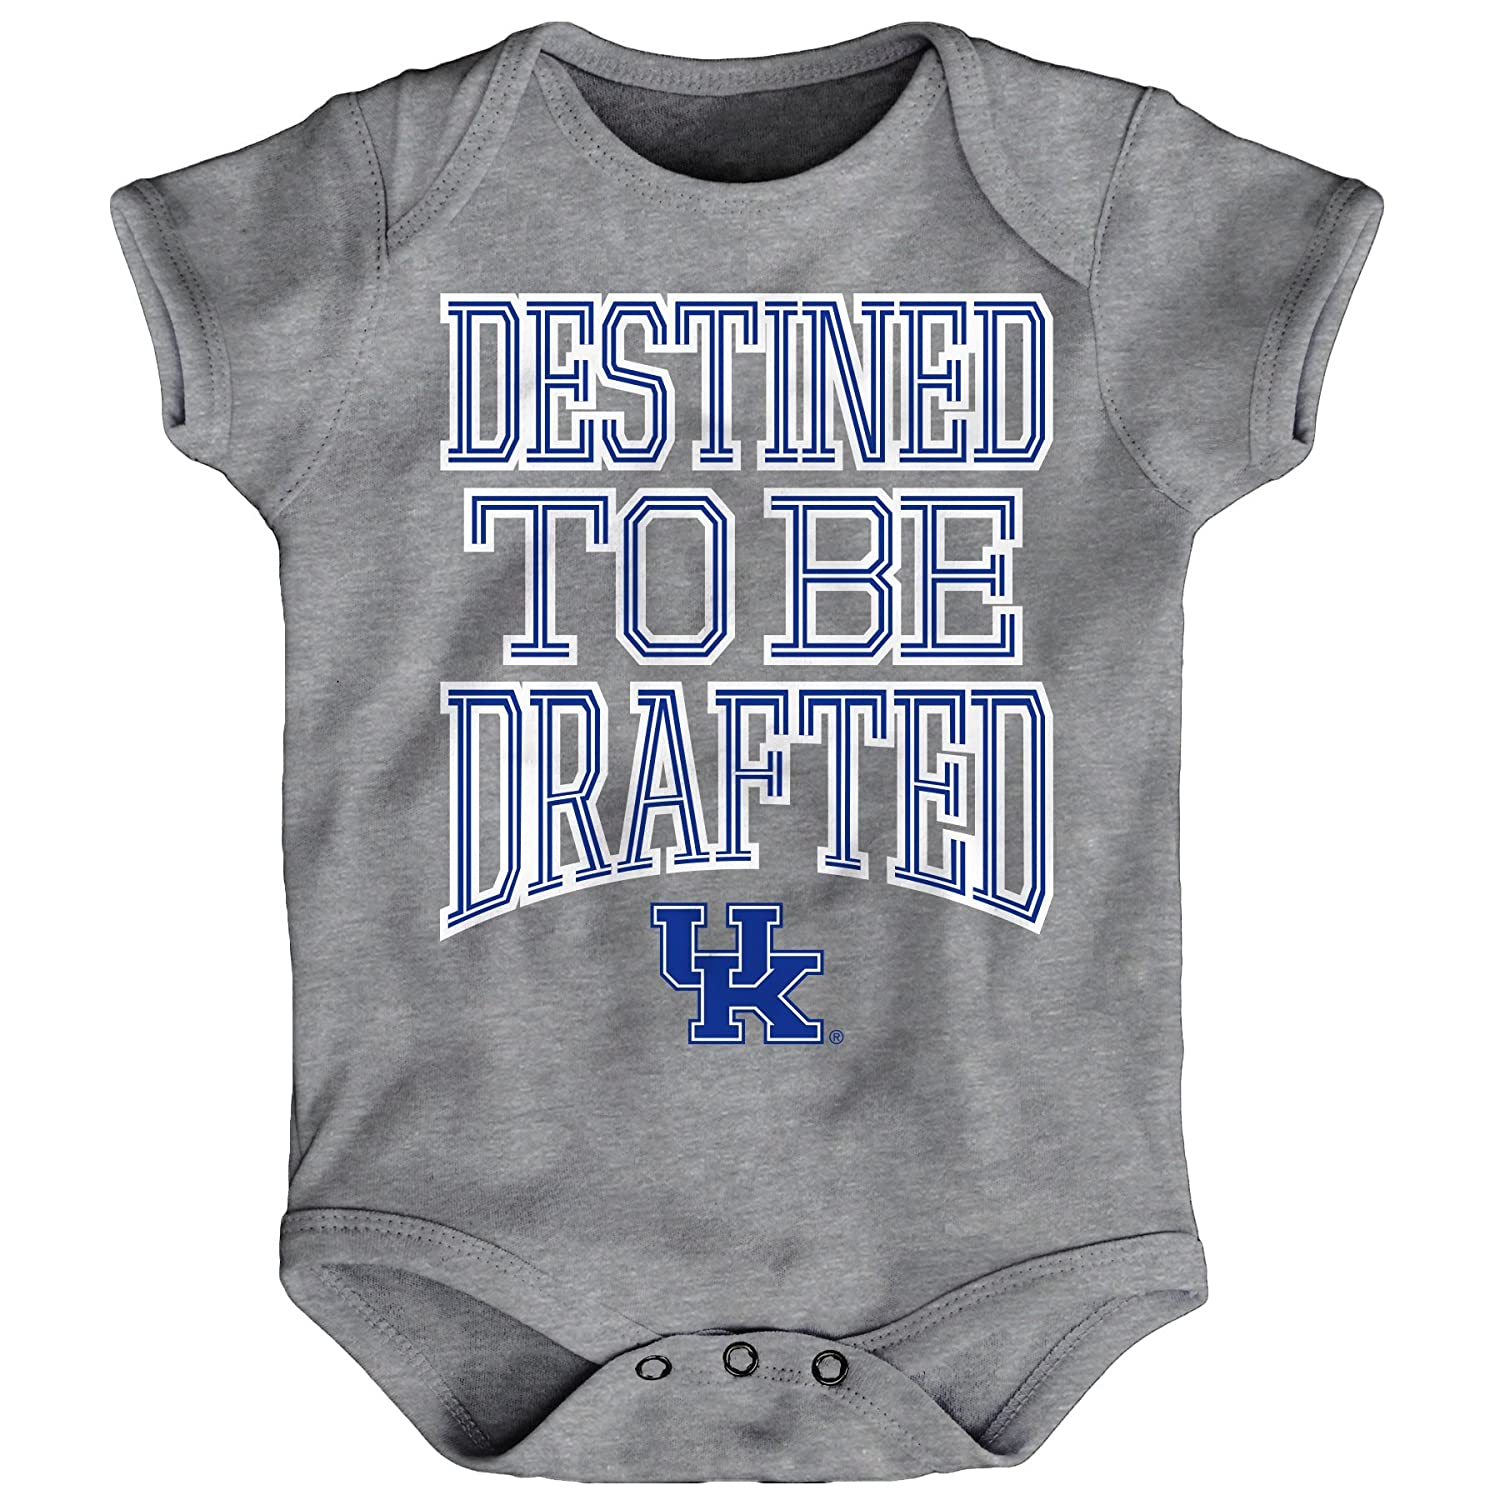 NCAA by Outerstuff NCAA Kentucky Wildcats Newborn /& Infant Destined Short Sleeve Bodysuit 24 Months Heather Grey